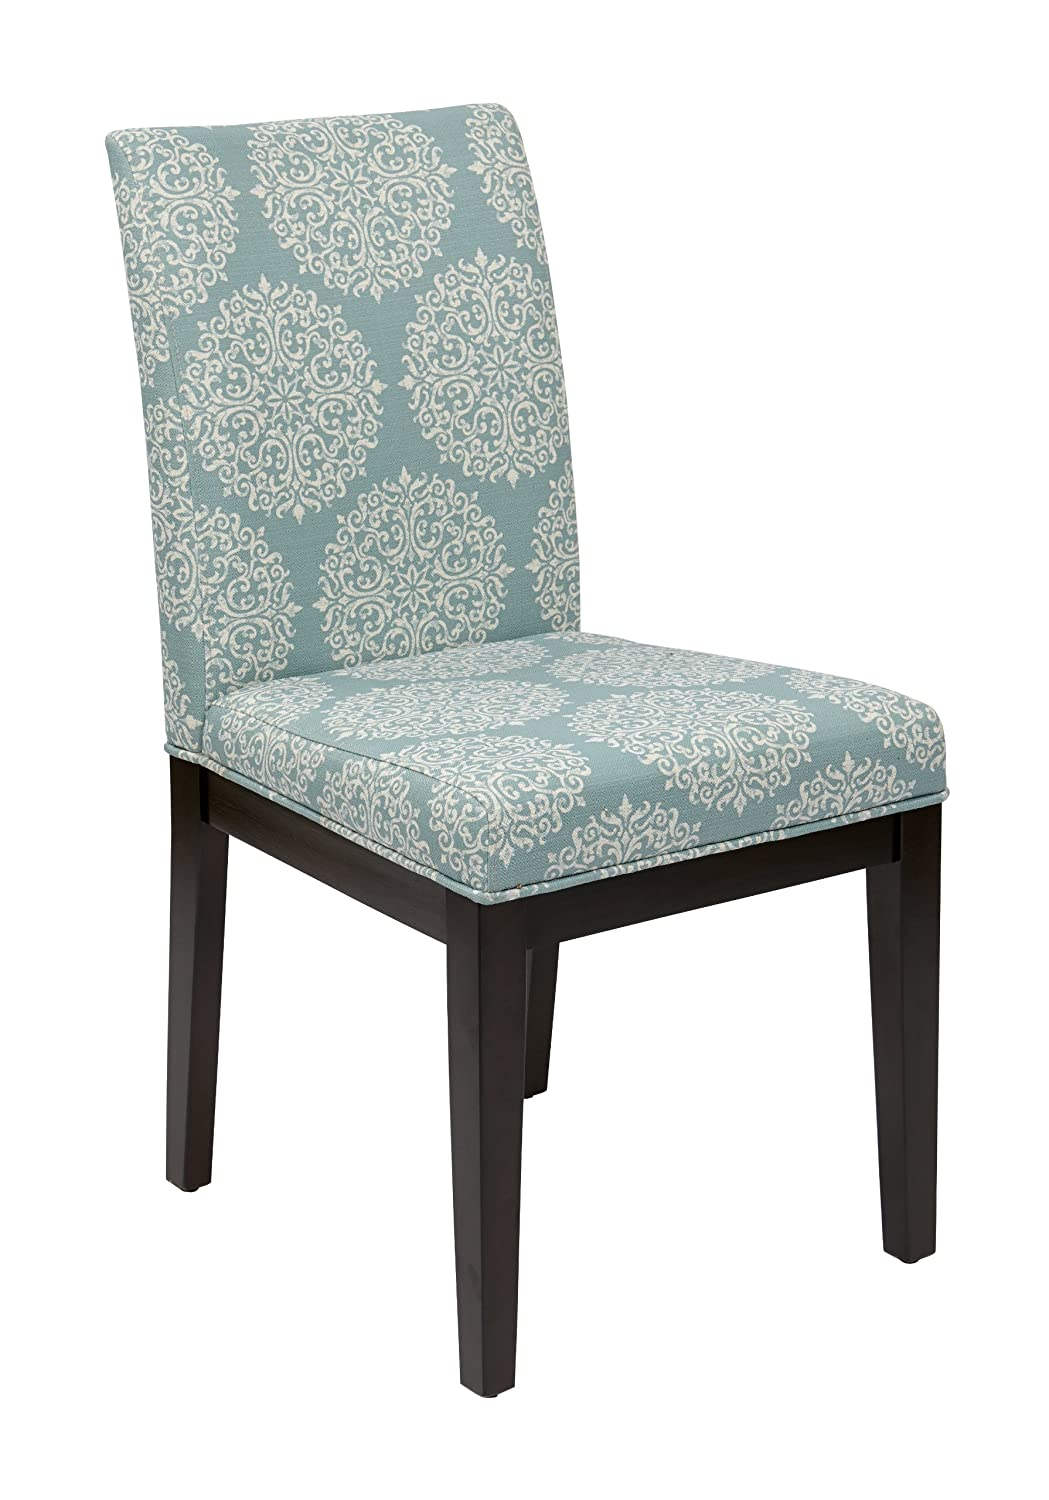 Brand-new Amazon.com: AVE SIX Dakota Upholstered Parsons Chair with Espresso  SW23